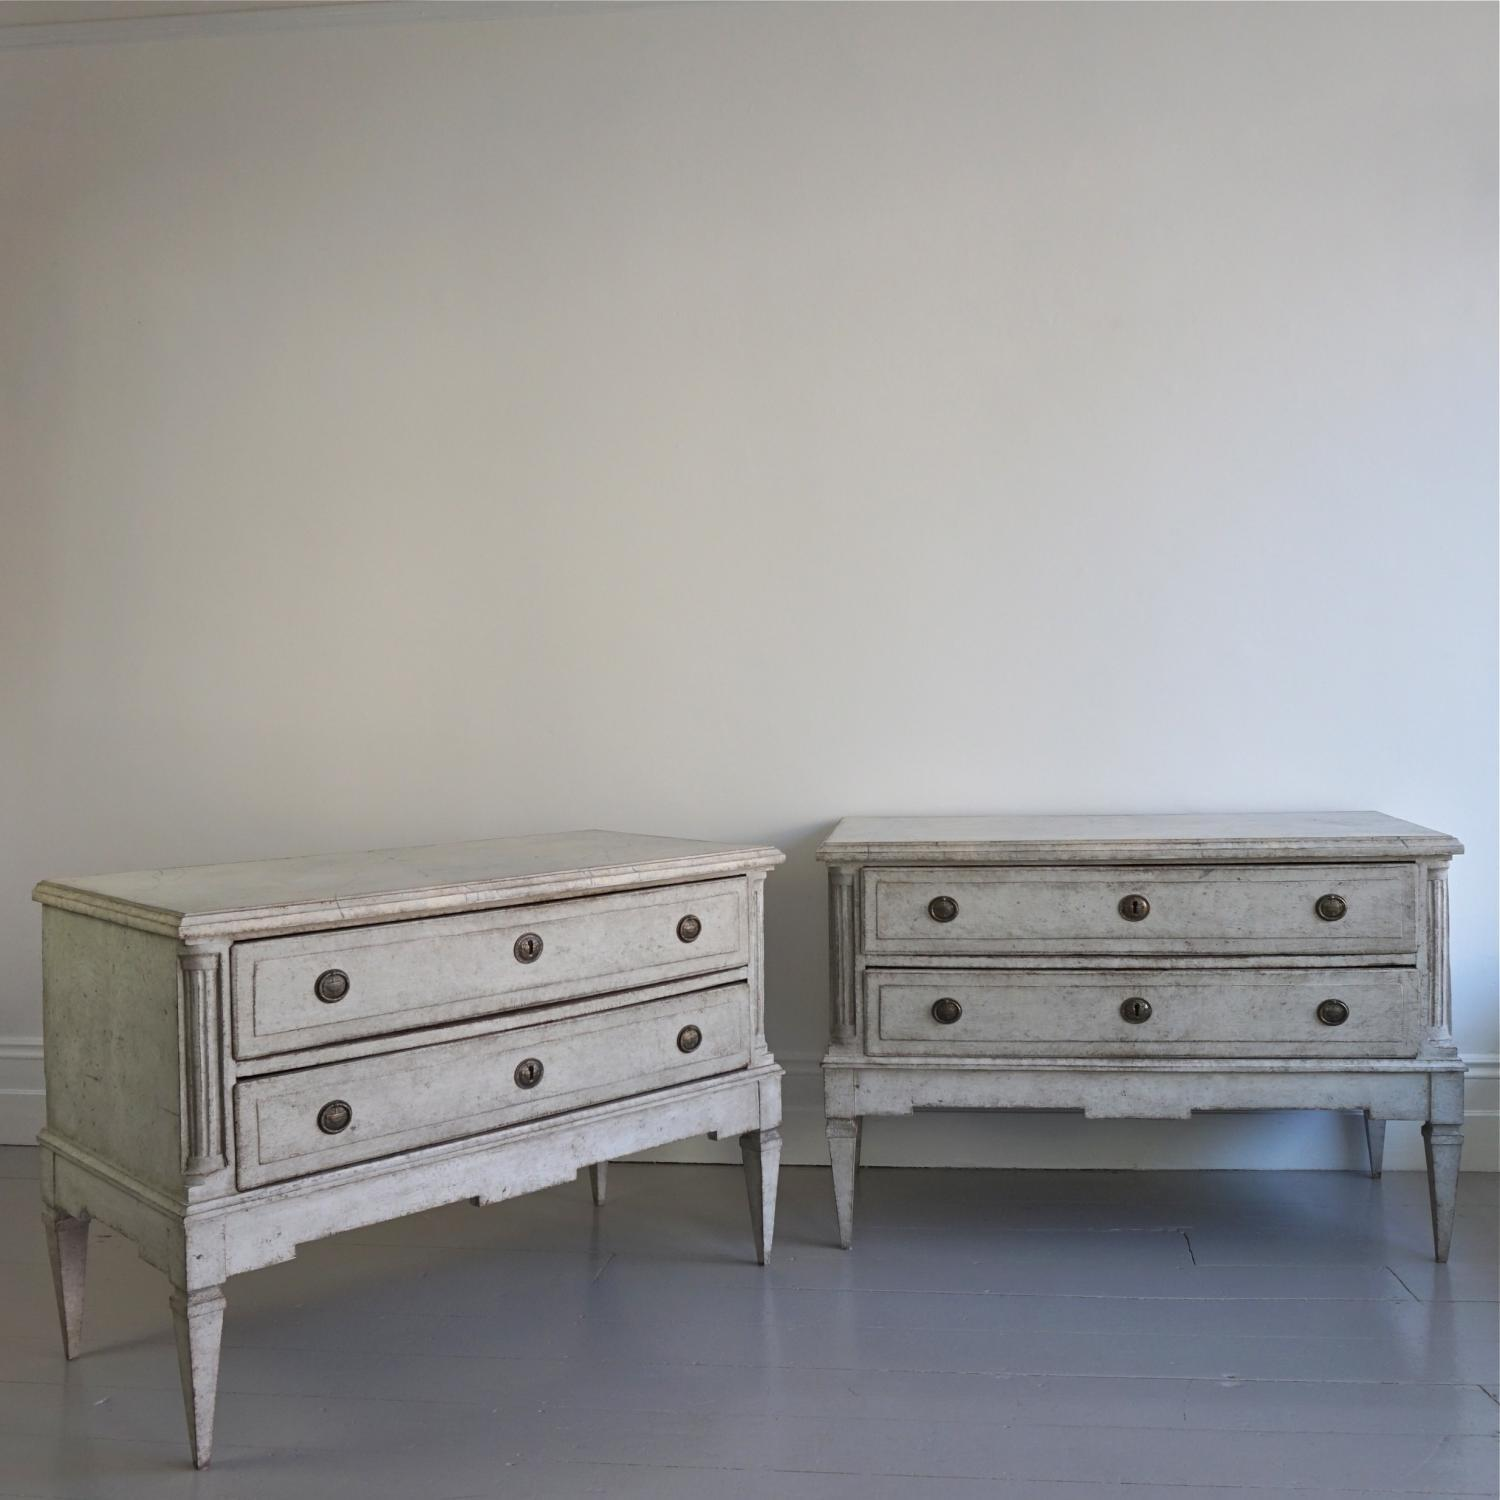 PAIR OF RARE GUSTAVIAN PERIOD CHESTS